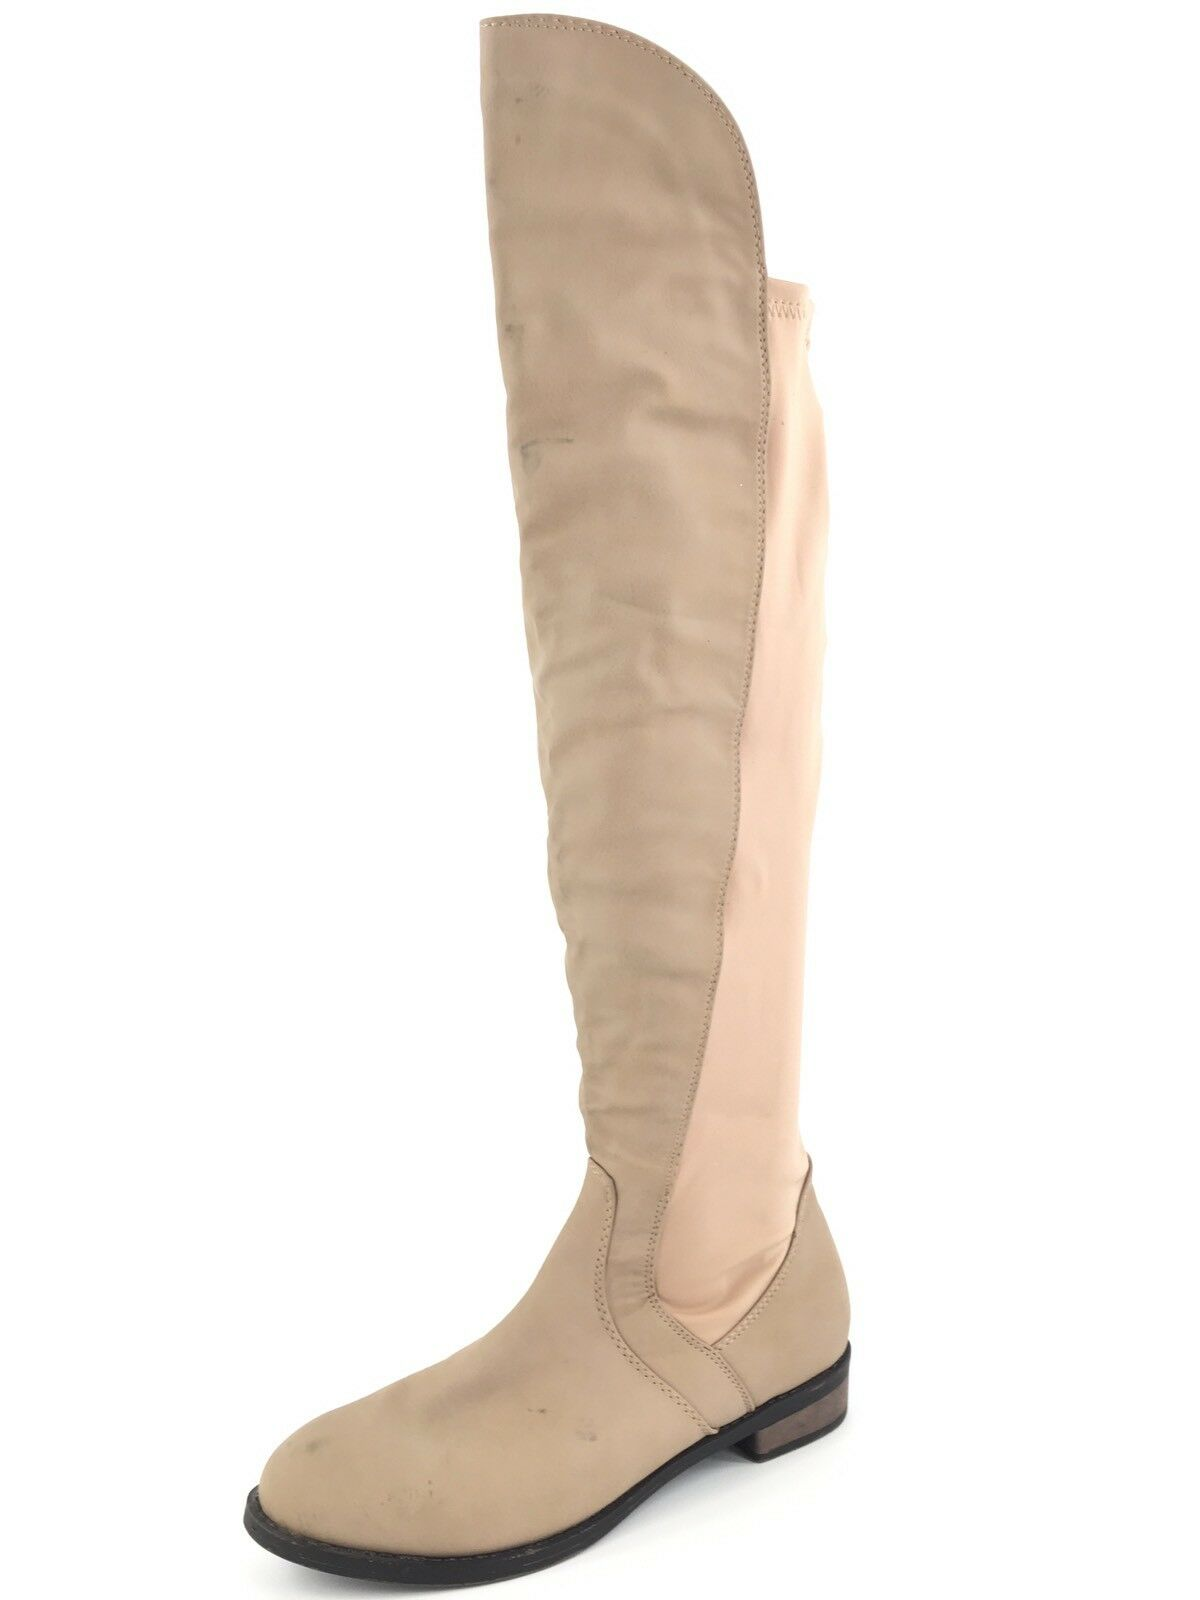 Chase And Chloe Moore Taupe Over The Knee Stretch Boots Womens Size 5.5 M